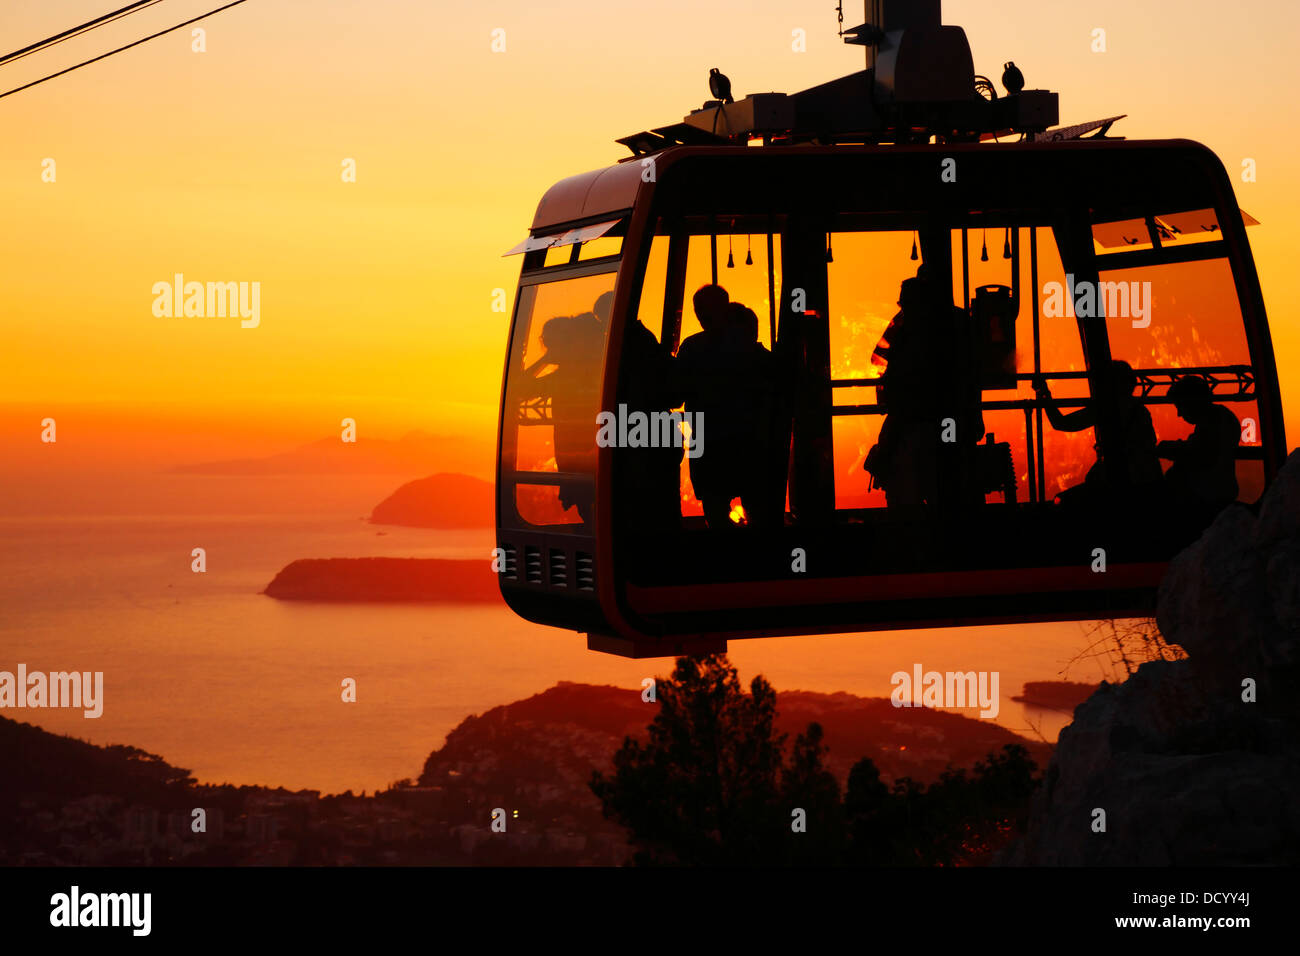 Dubrovnik Croatia. Cable car at sunset. - Stock Image